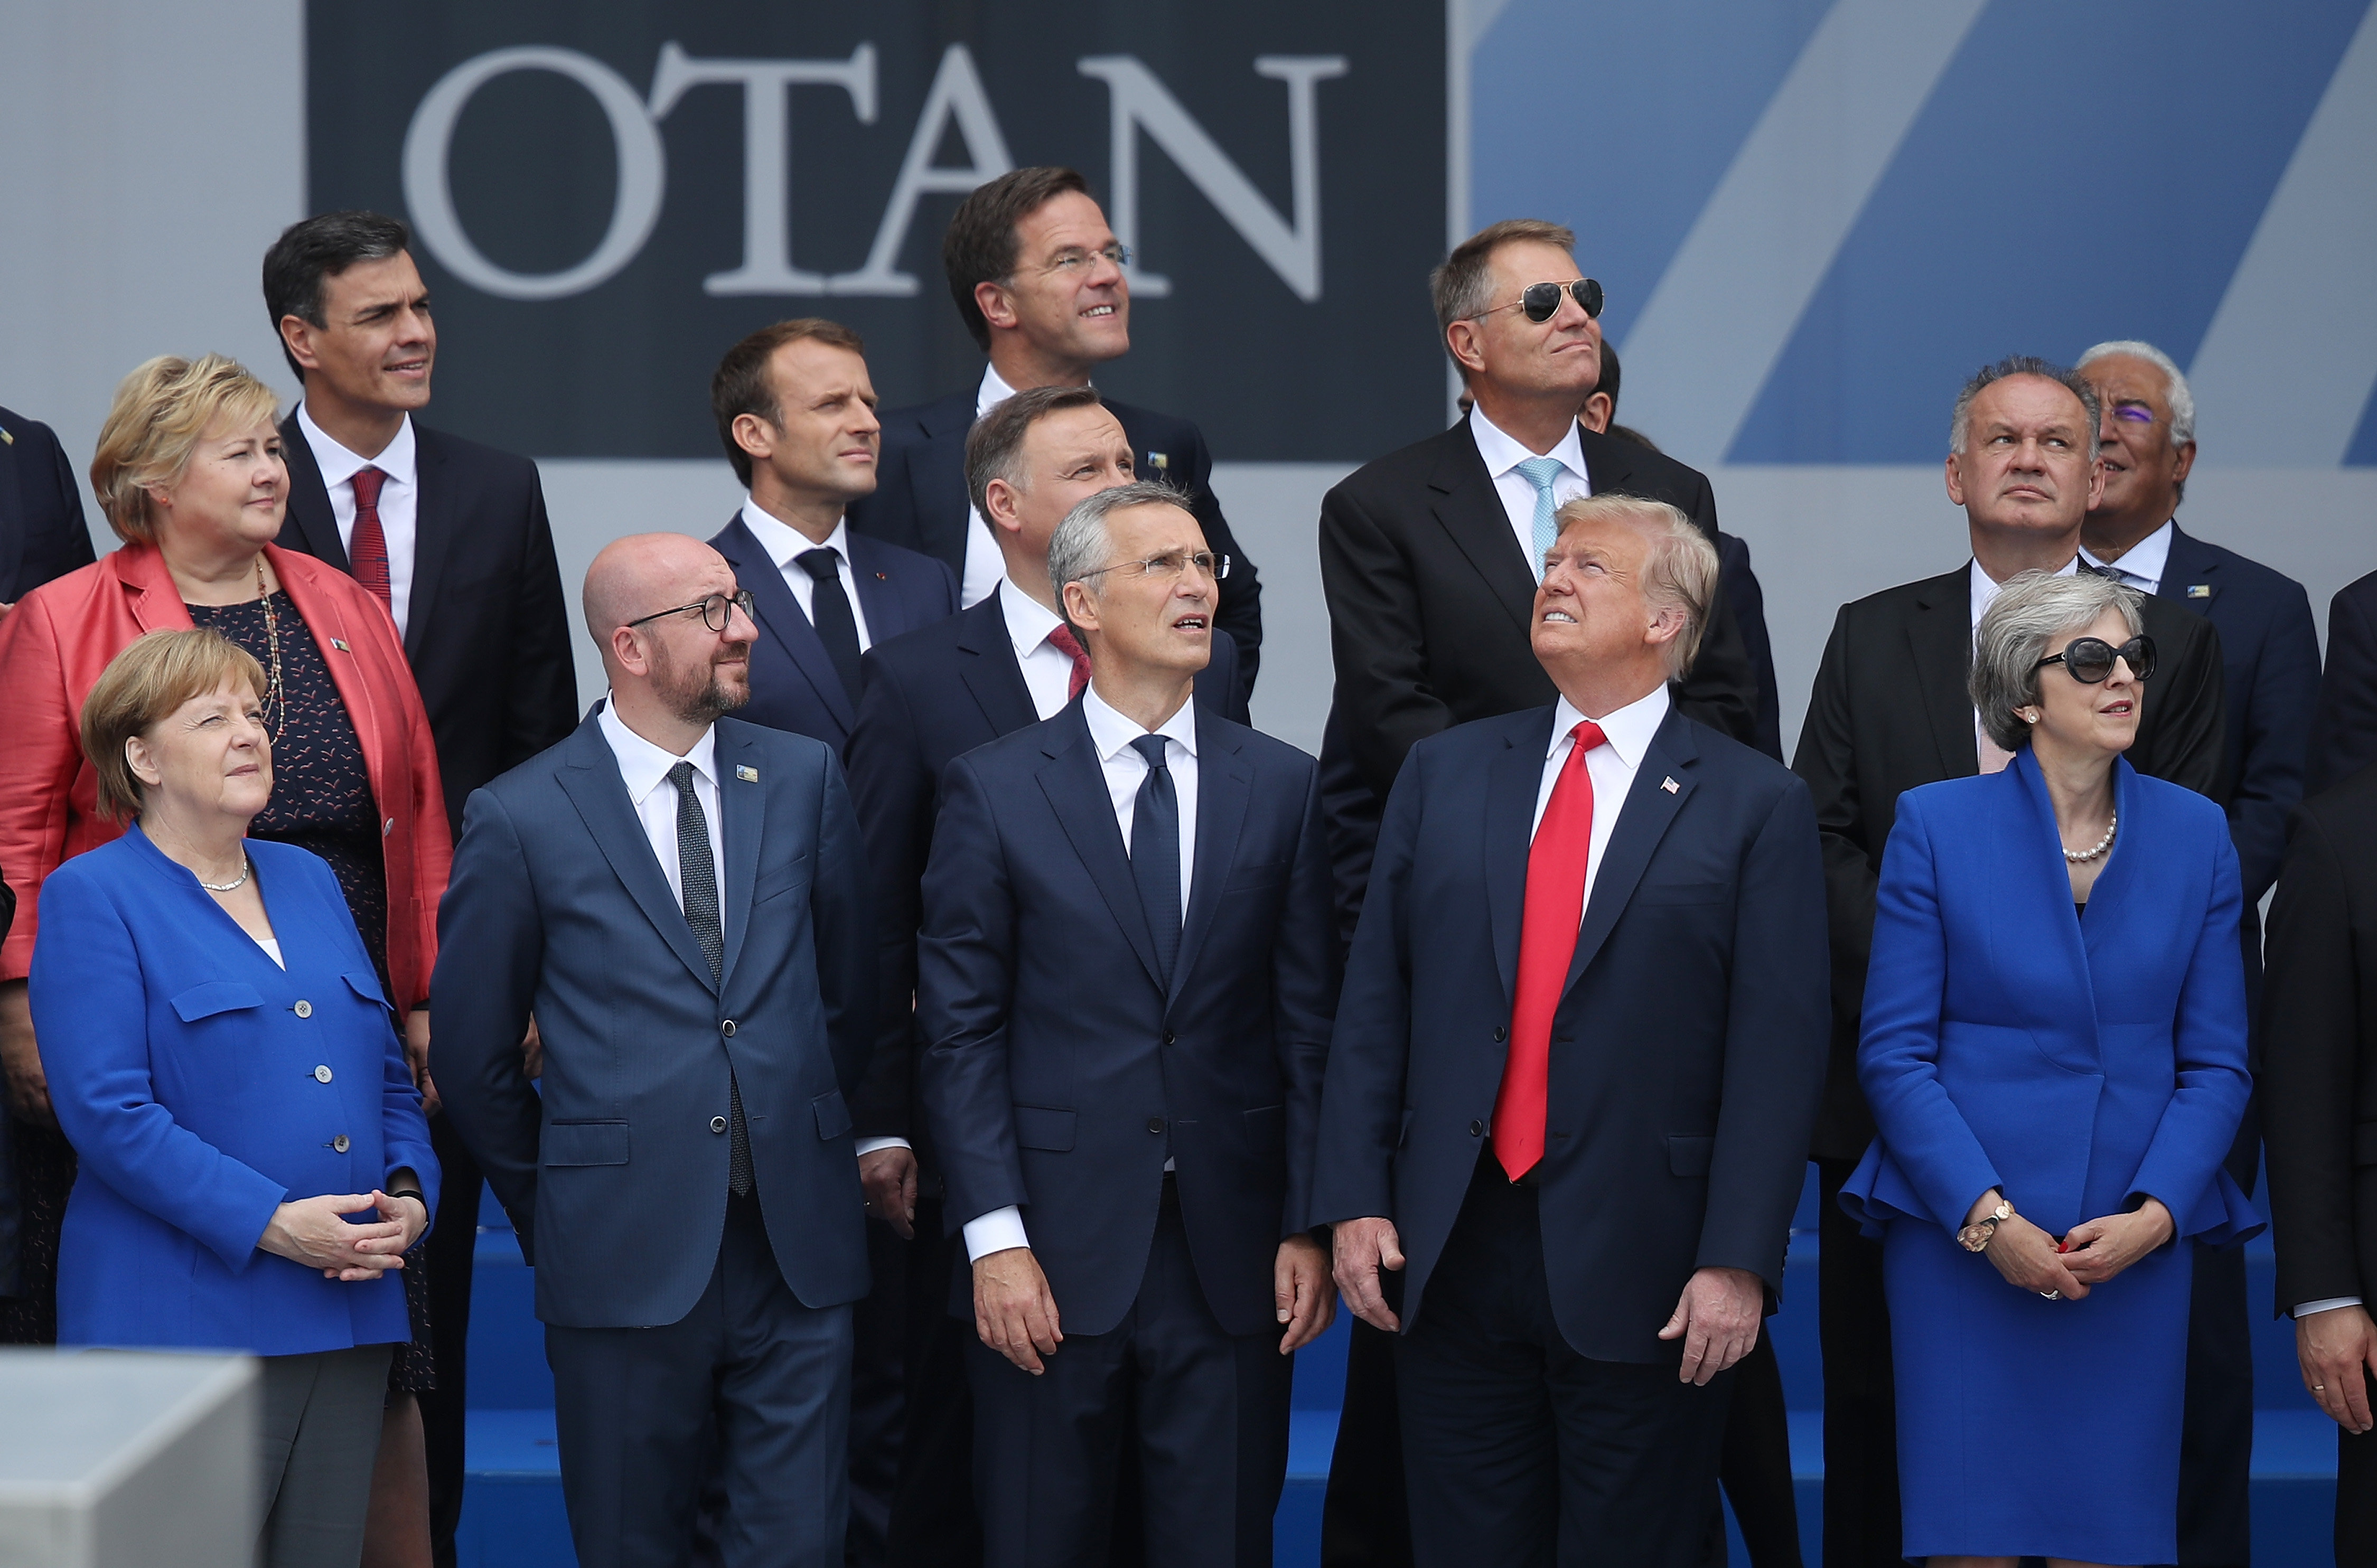 (From L to R, first row) German Chancellor Angela Merkel, Belgian Prime Minister Charles Michel, NATO Secretary General Jens Stoltenberg, U.S. President Donald Trump and British Prime Minister Theresa May attend the opening ceremony at the 2018 NATO Summit at NATO headquarters in Brussels, Belgium on July 11, 2018.